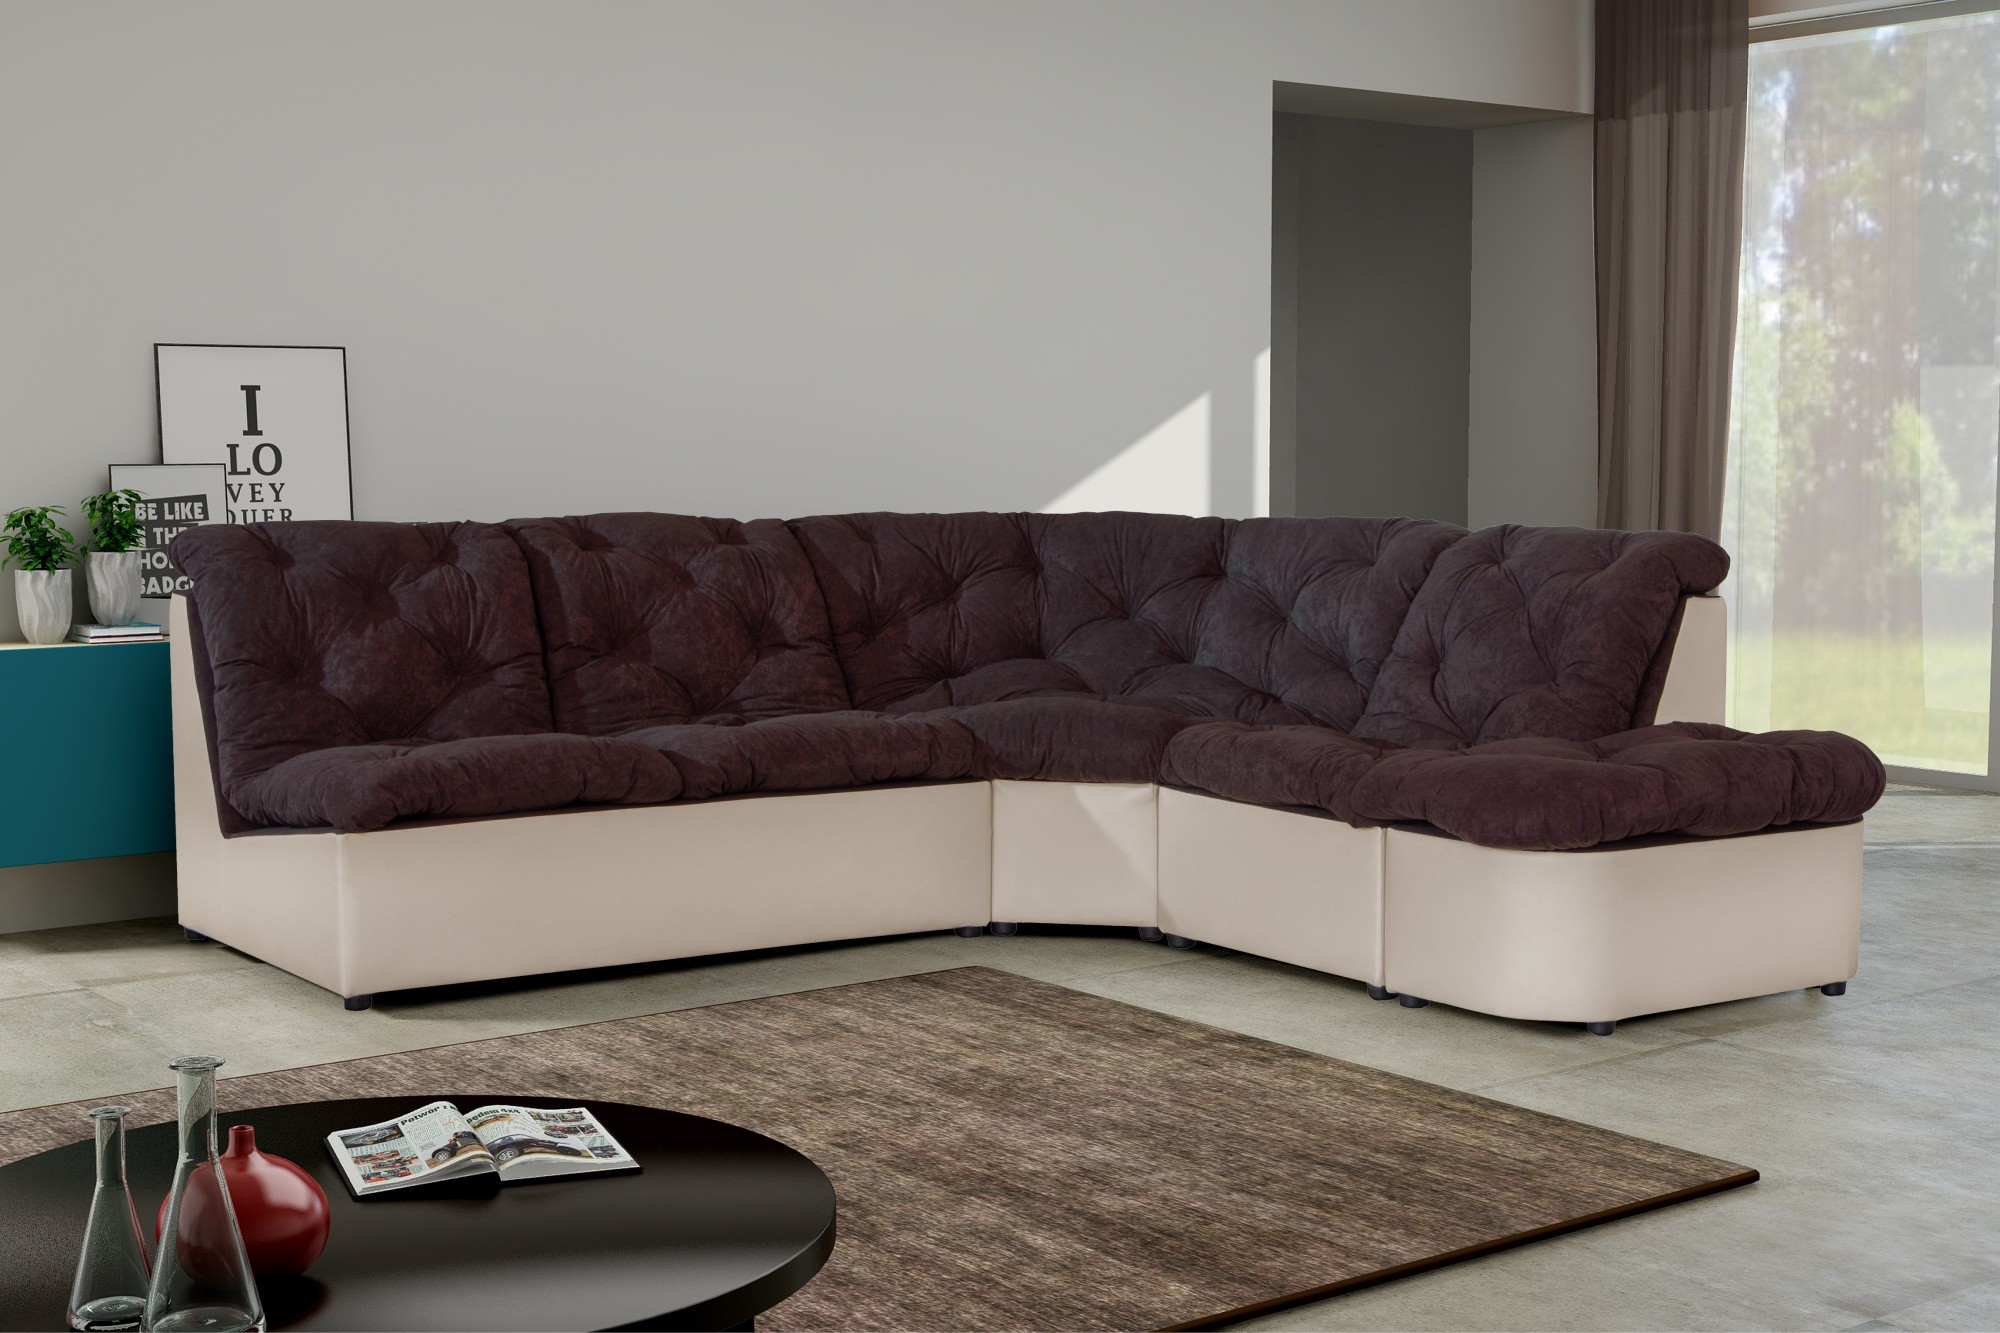 Canap d angle chocolat royal sofa id e de canap et for Monsieur meuble canape d angle